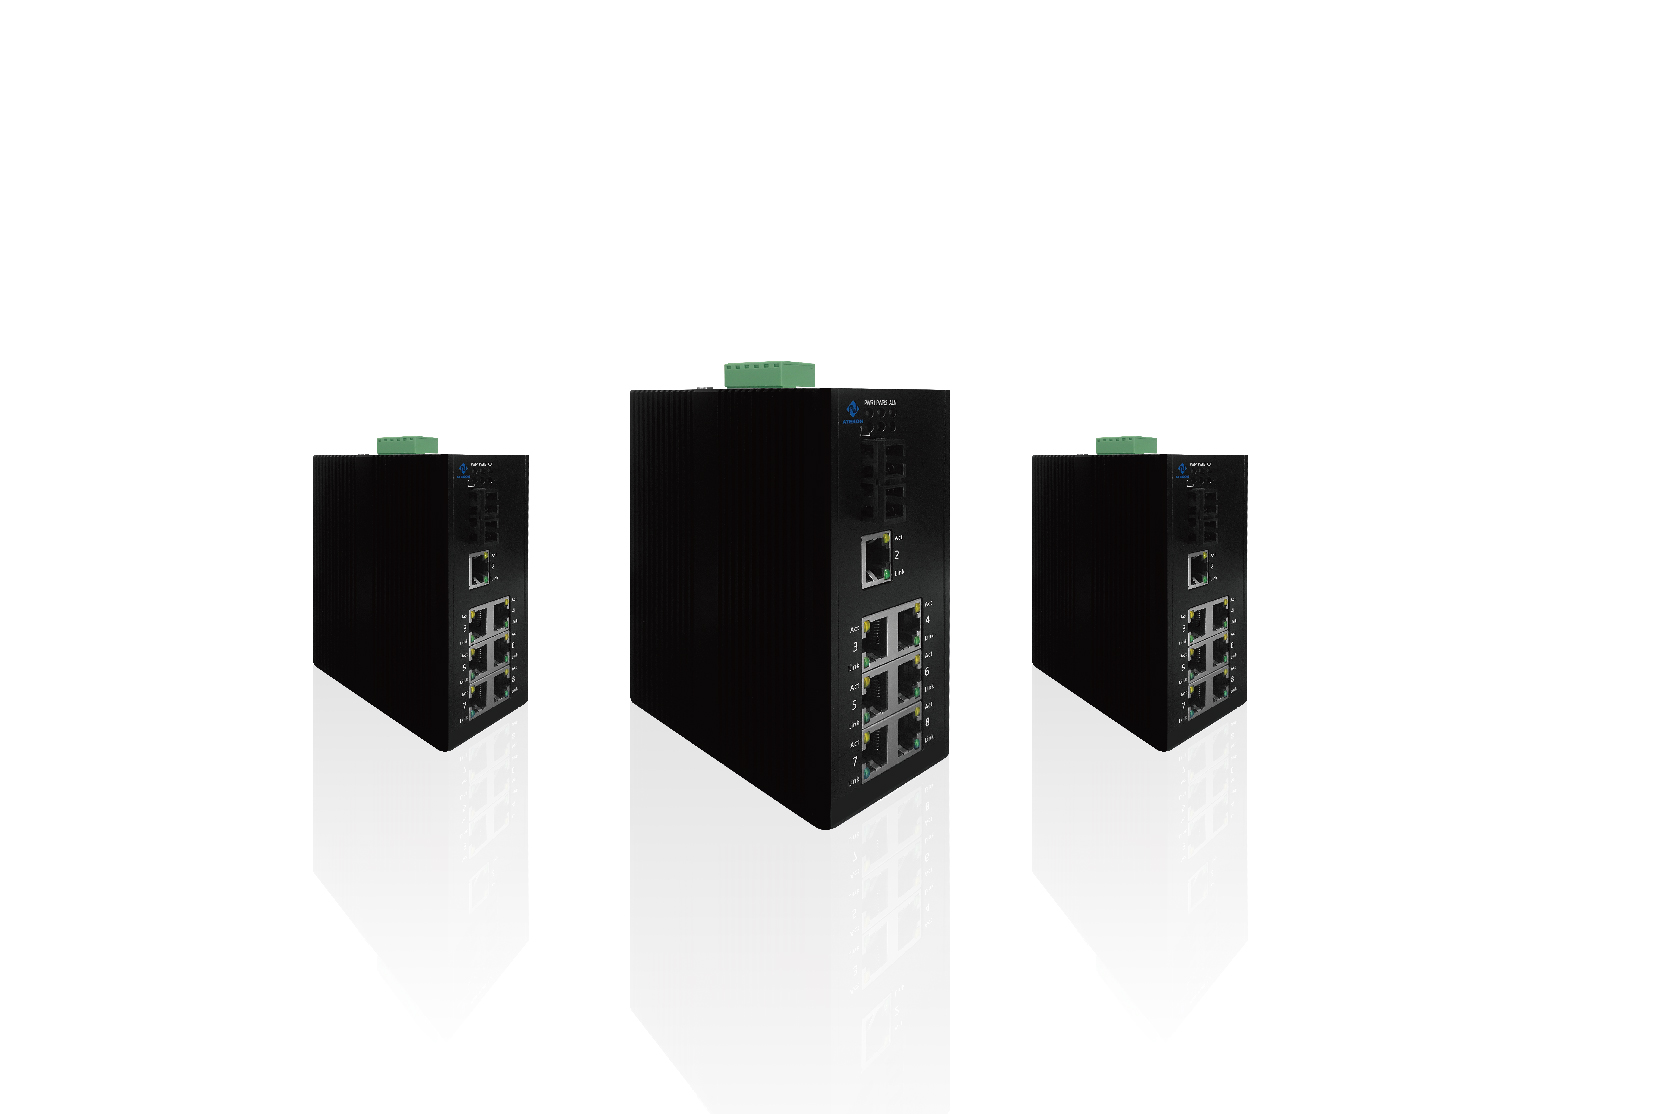 Industrial-grade unmanaged switches